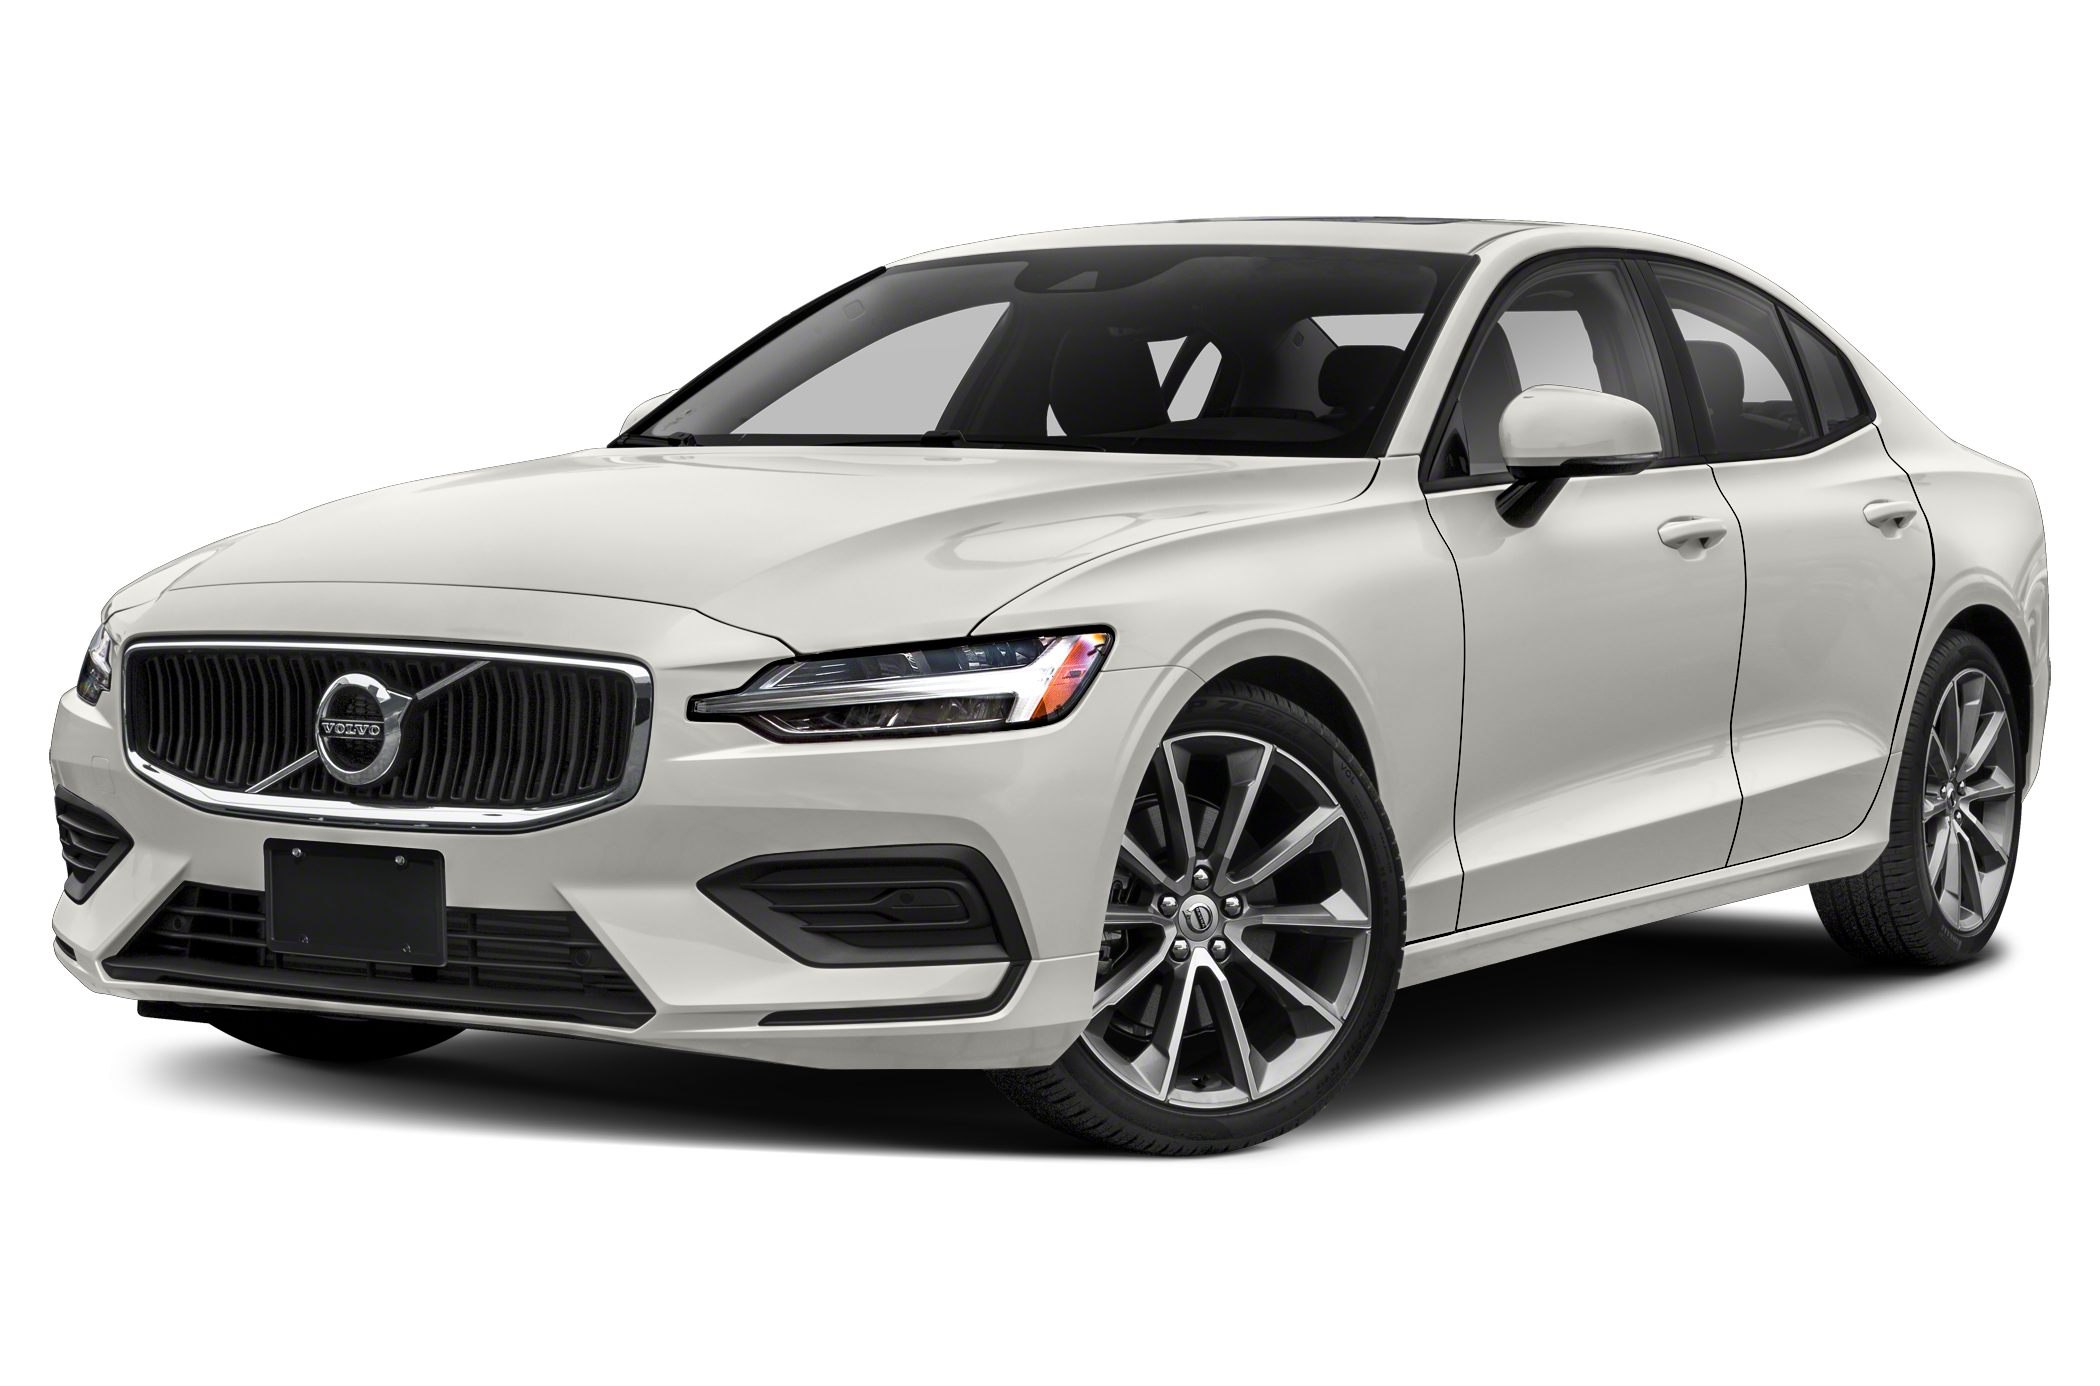 2019 Volvo S60 Deals Prices Incentives Leases Overview Carsdirect